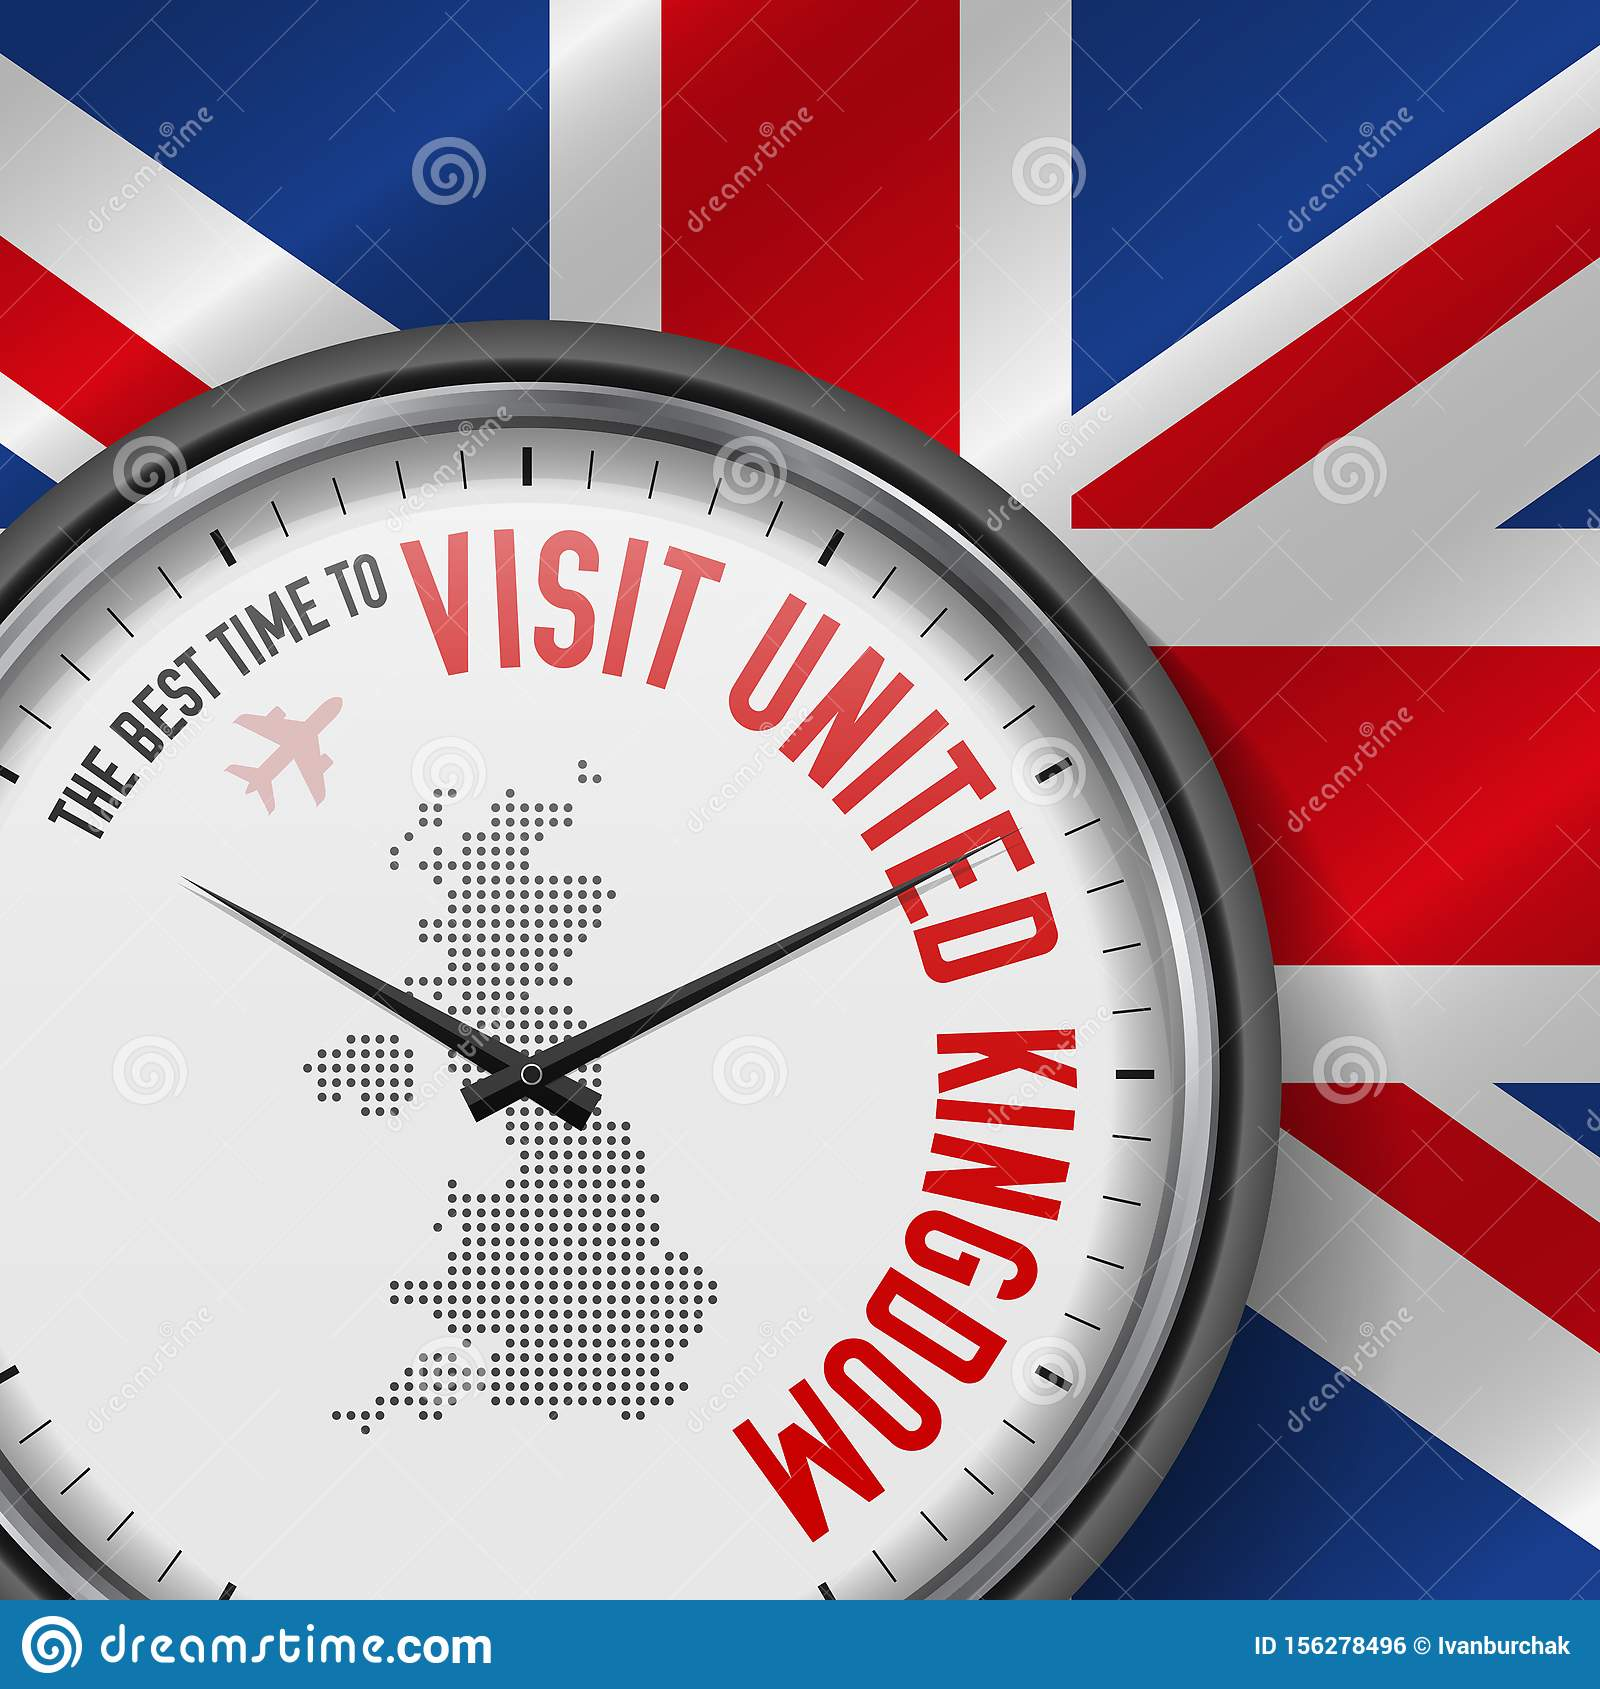 The Best Time to Visit United Kingdom. Flight, Tour to Great Britain. Vector Illustration